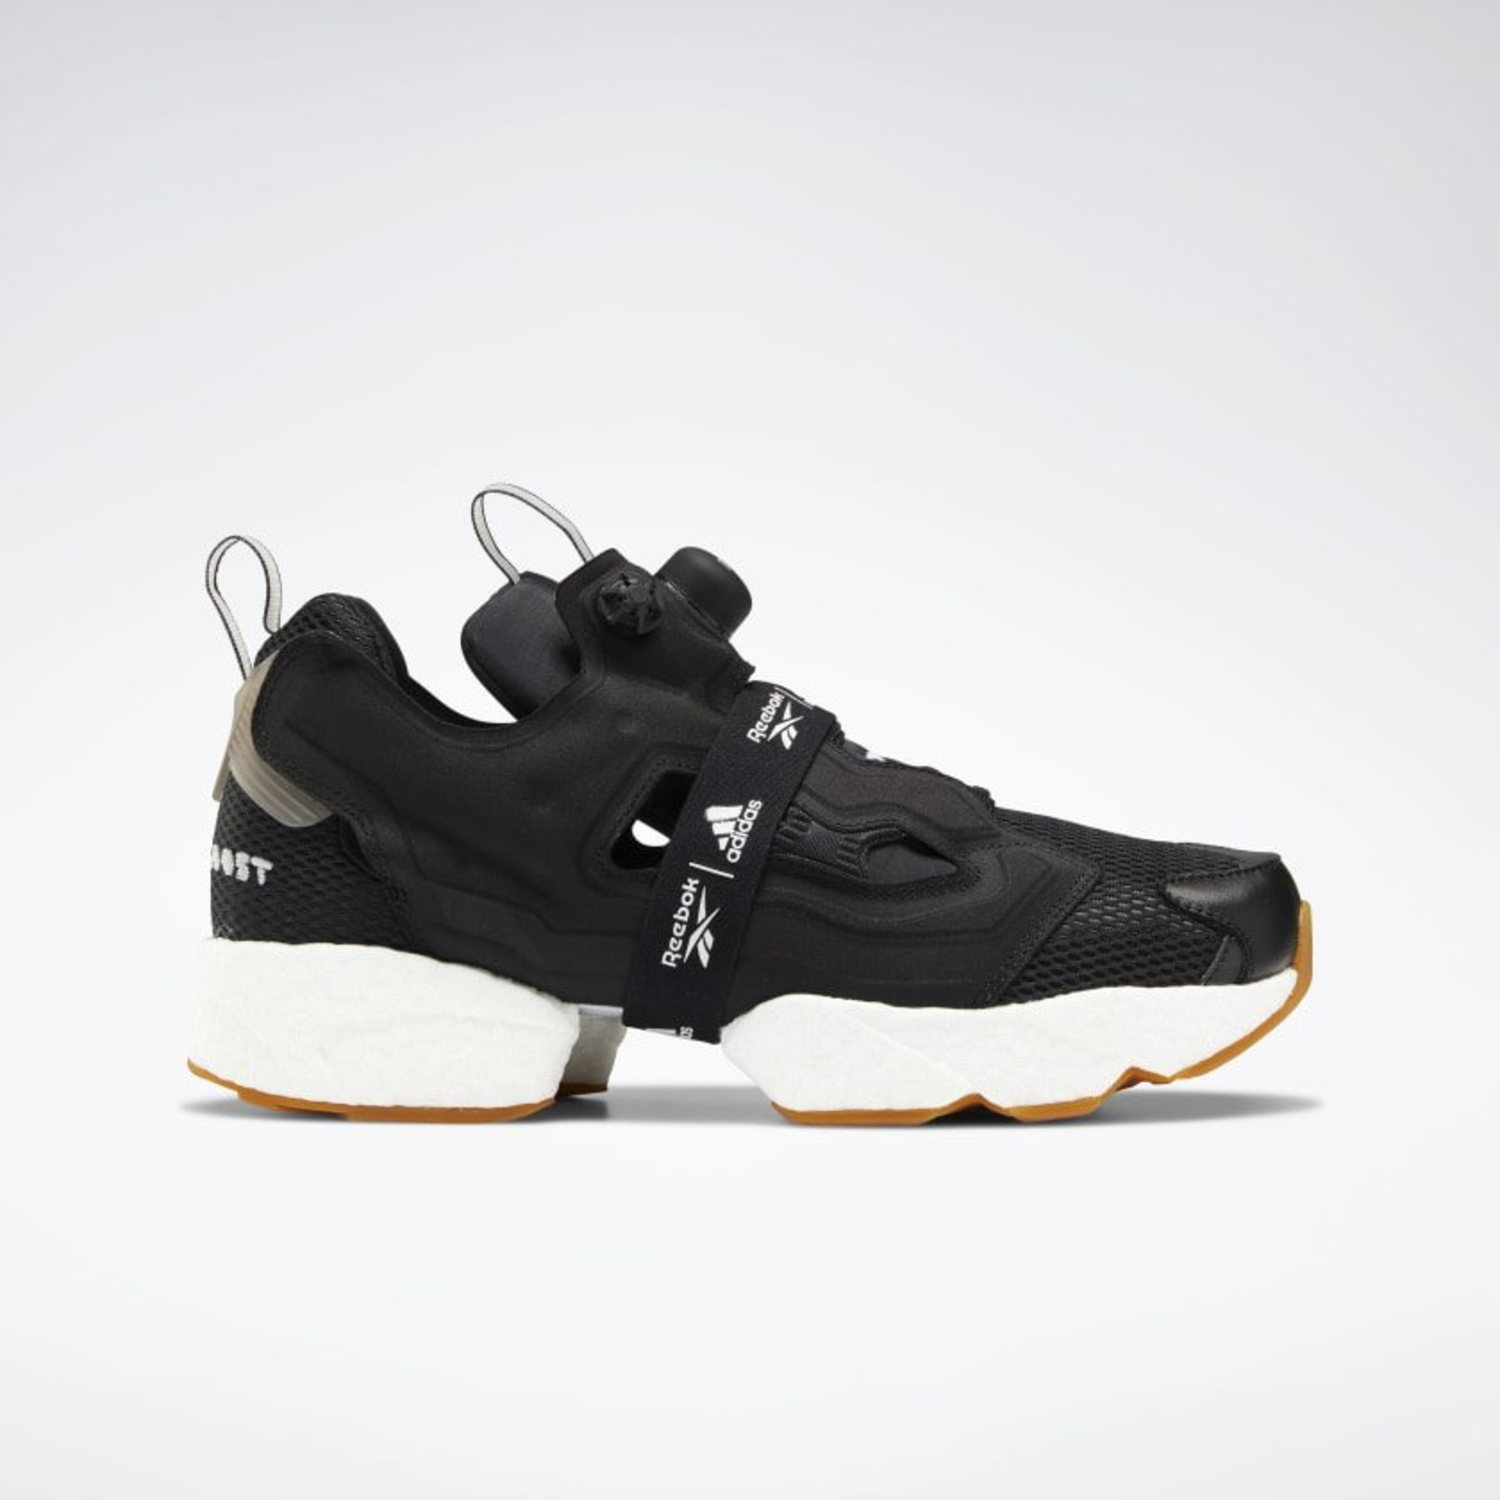 Instapump Fury Boost Black & White (Black)